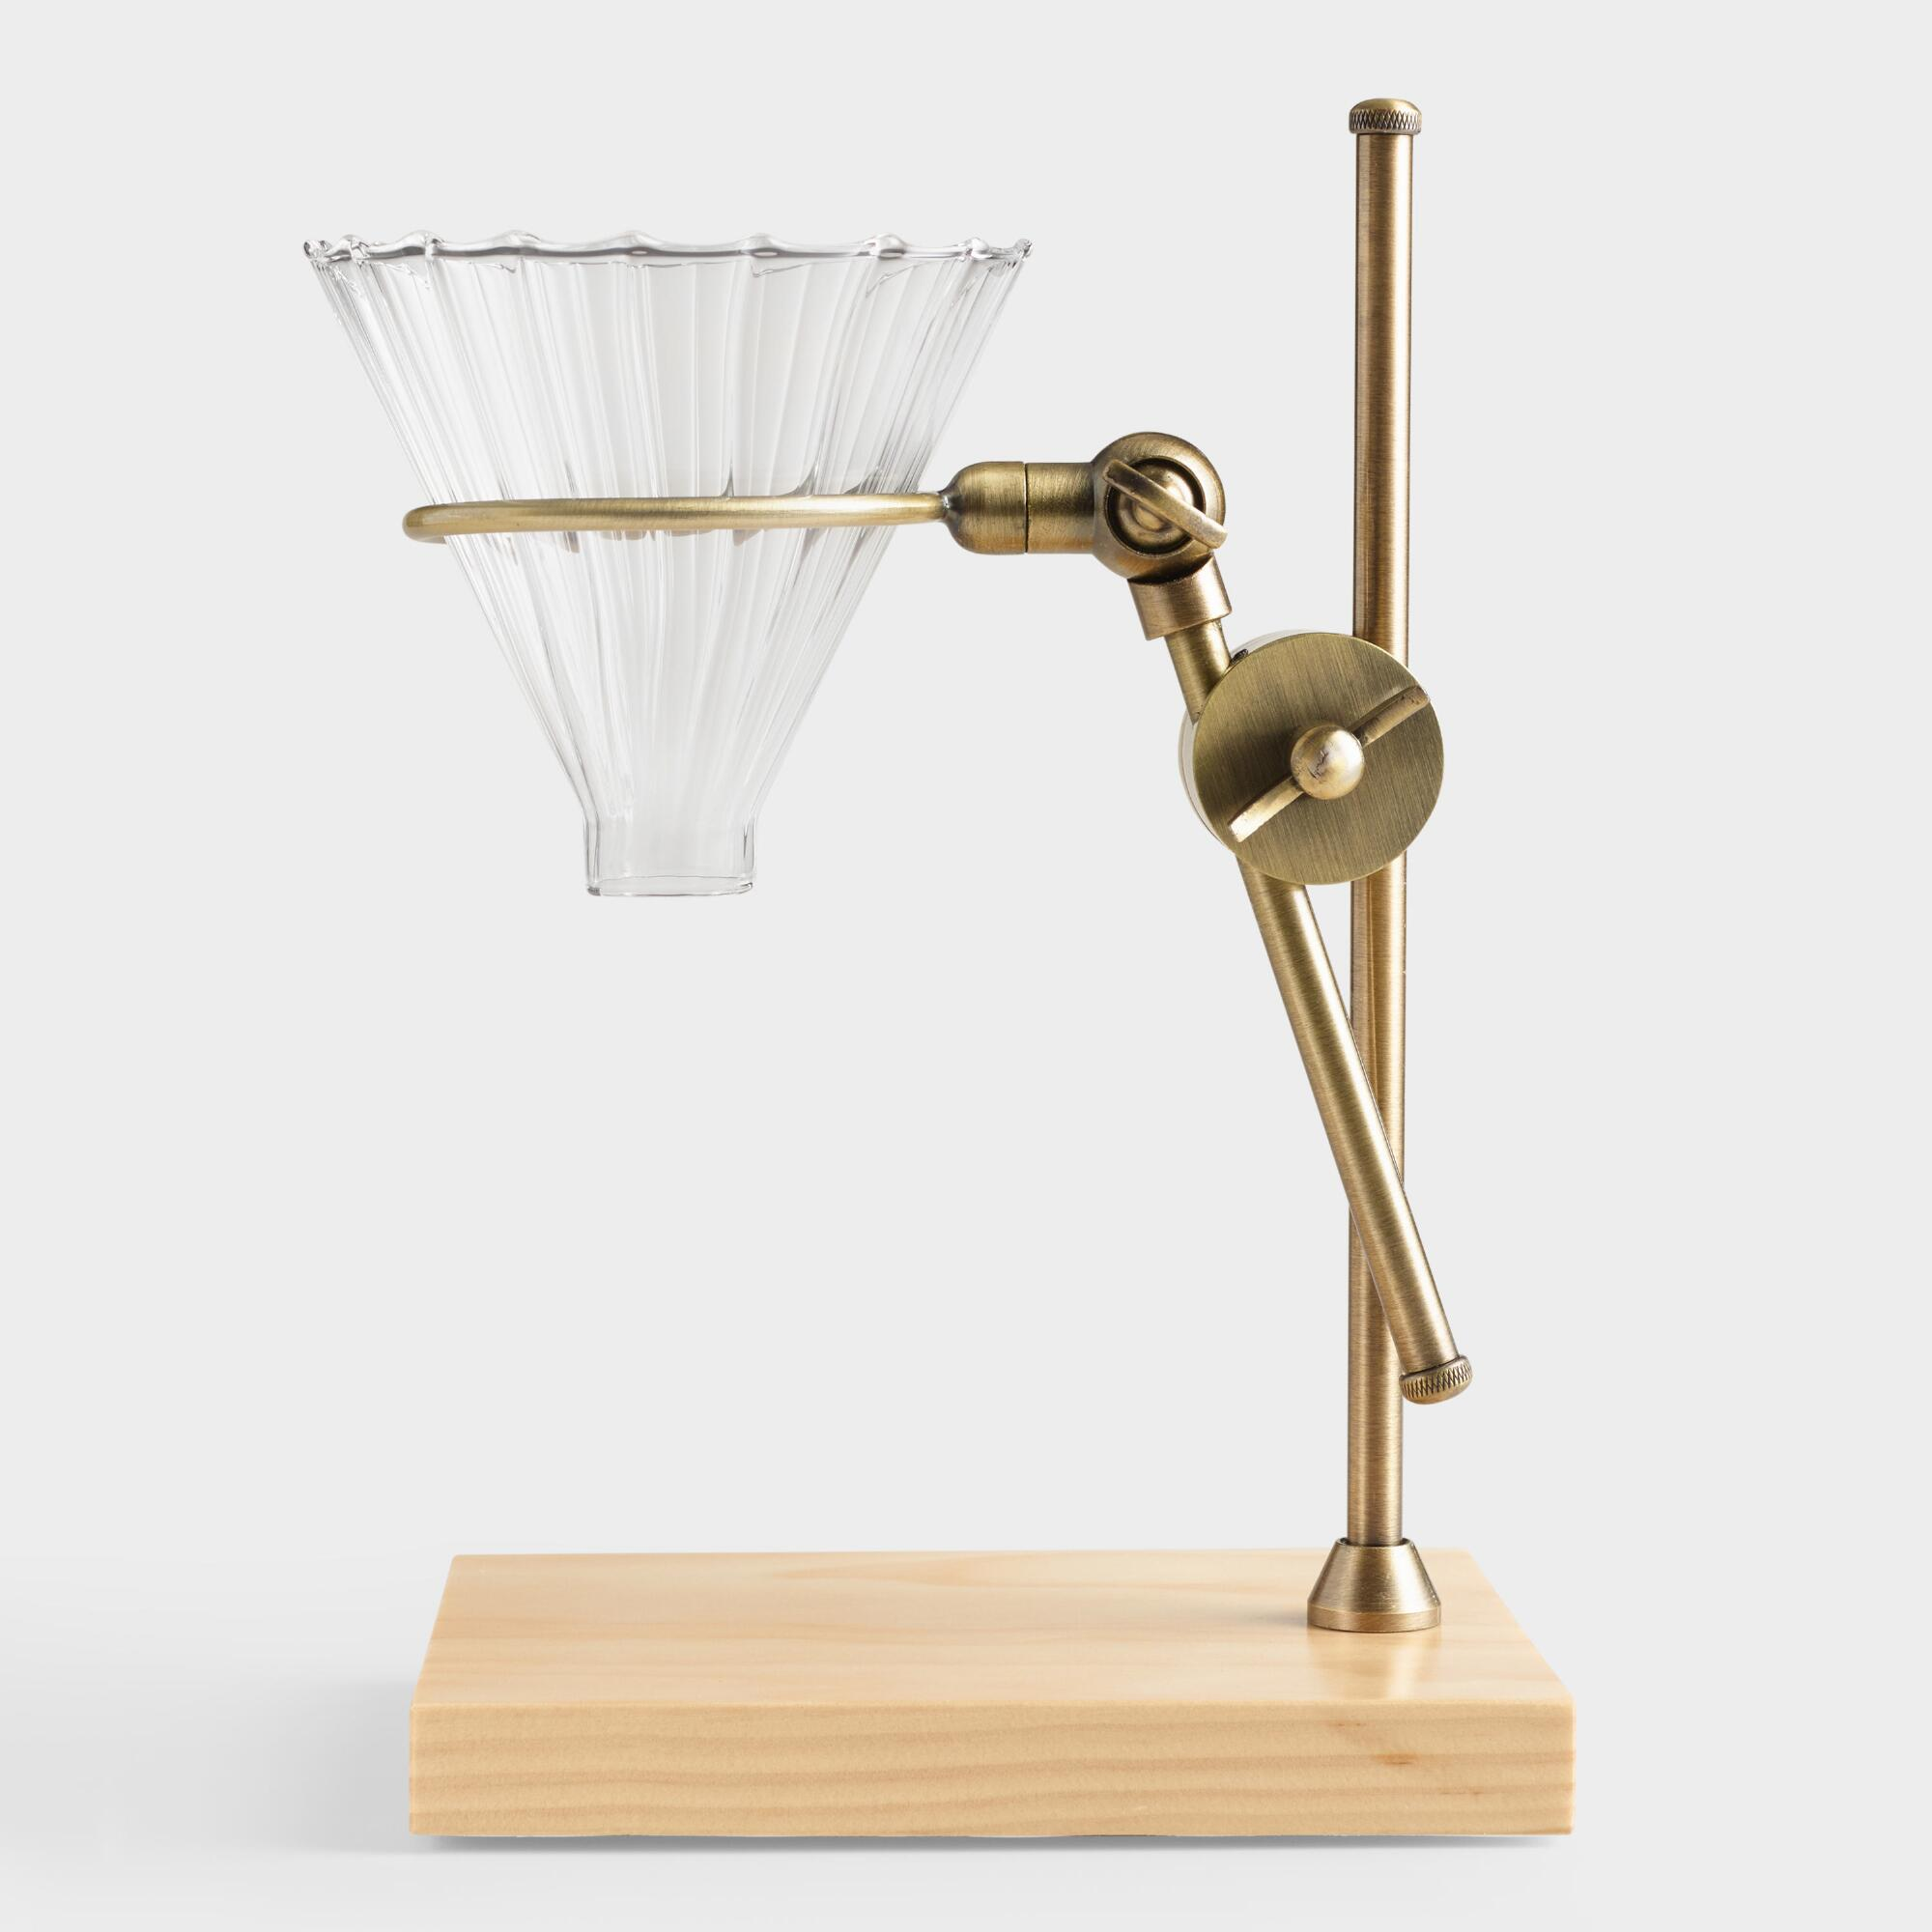 Bed bath beyond french press - Brass Pour Over Coffee Dripper Stand With Wood Base